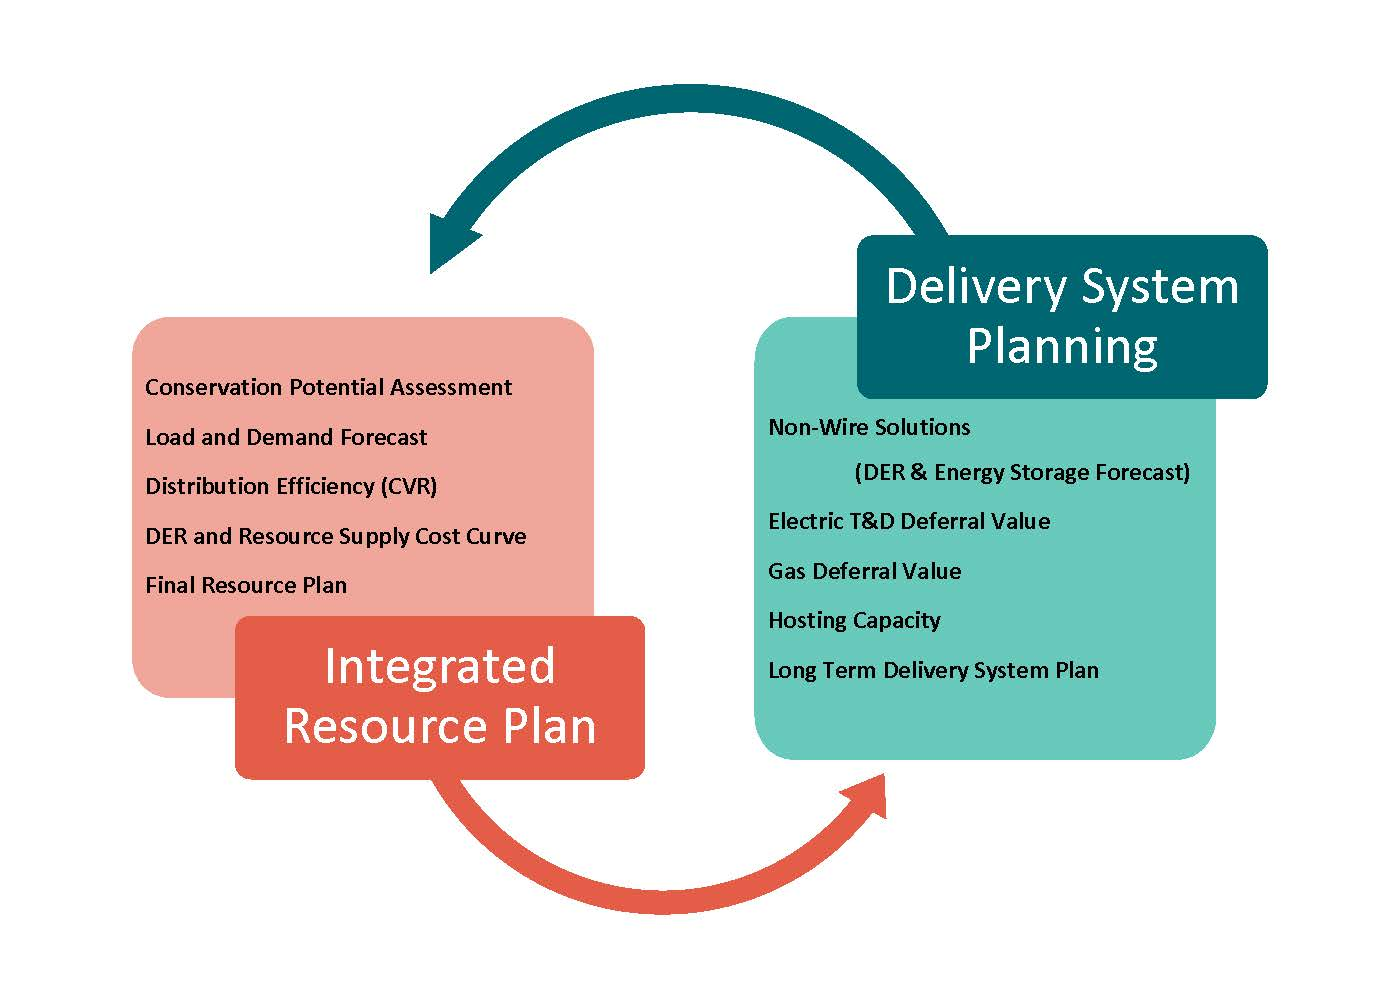 The integrated resource plan and delivery system planning uses the same information, just in different ways. This creates the basis of the feedback loop relationship between these two processes.